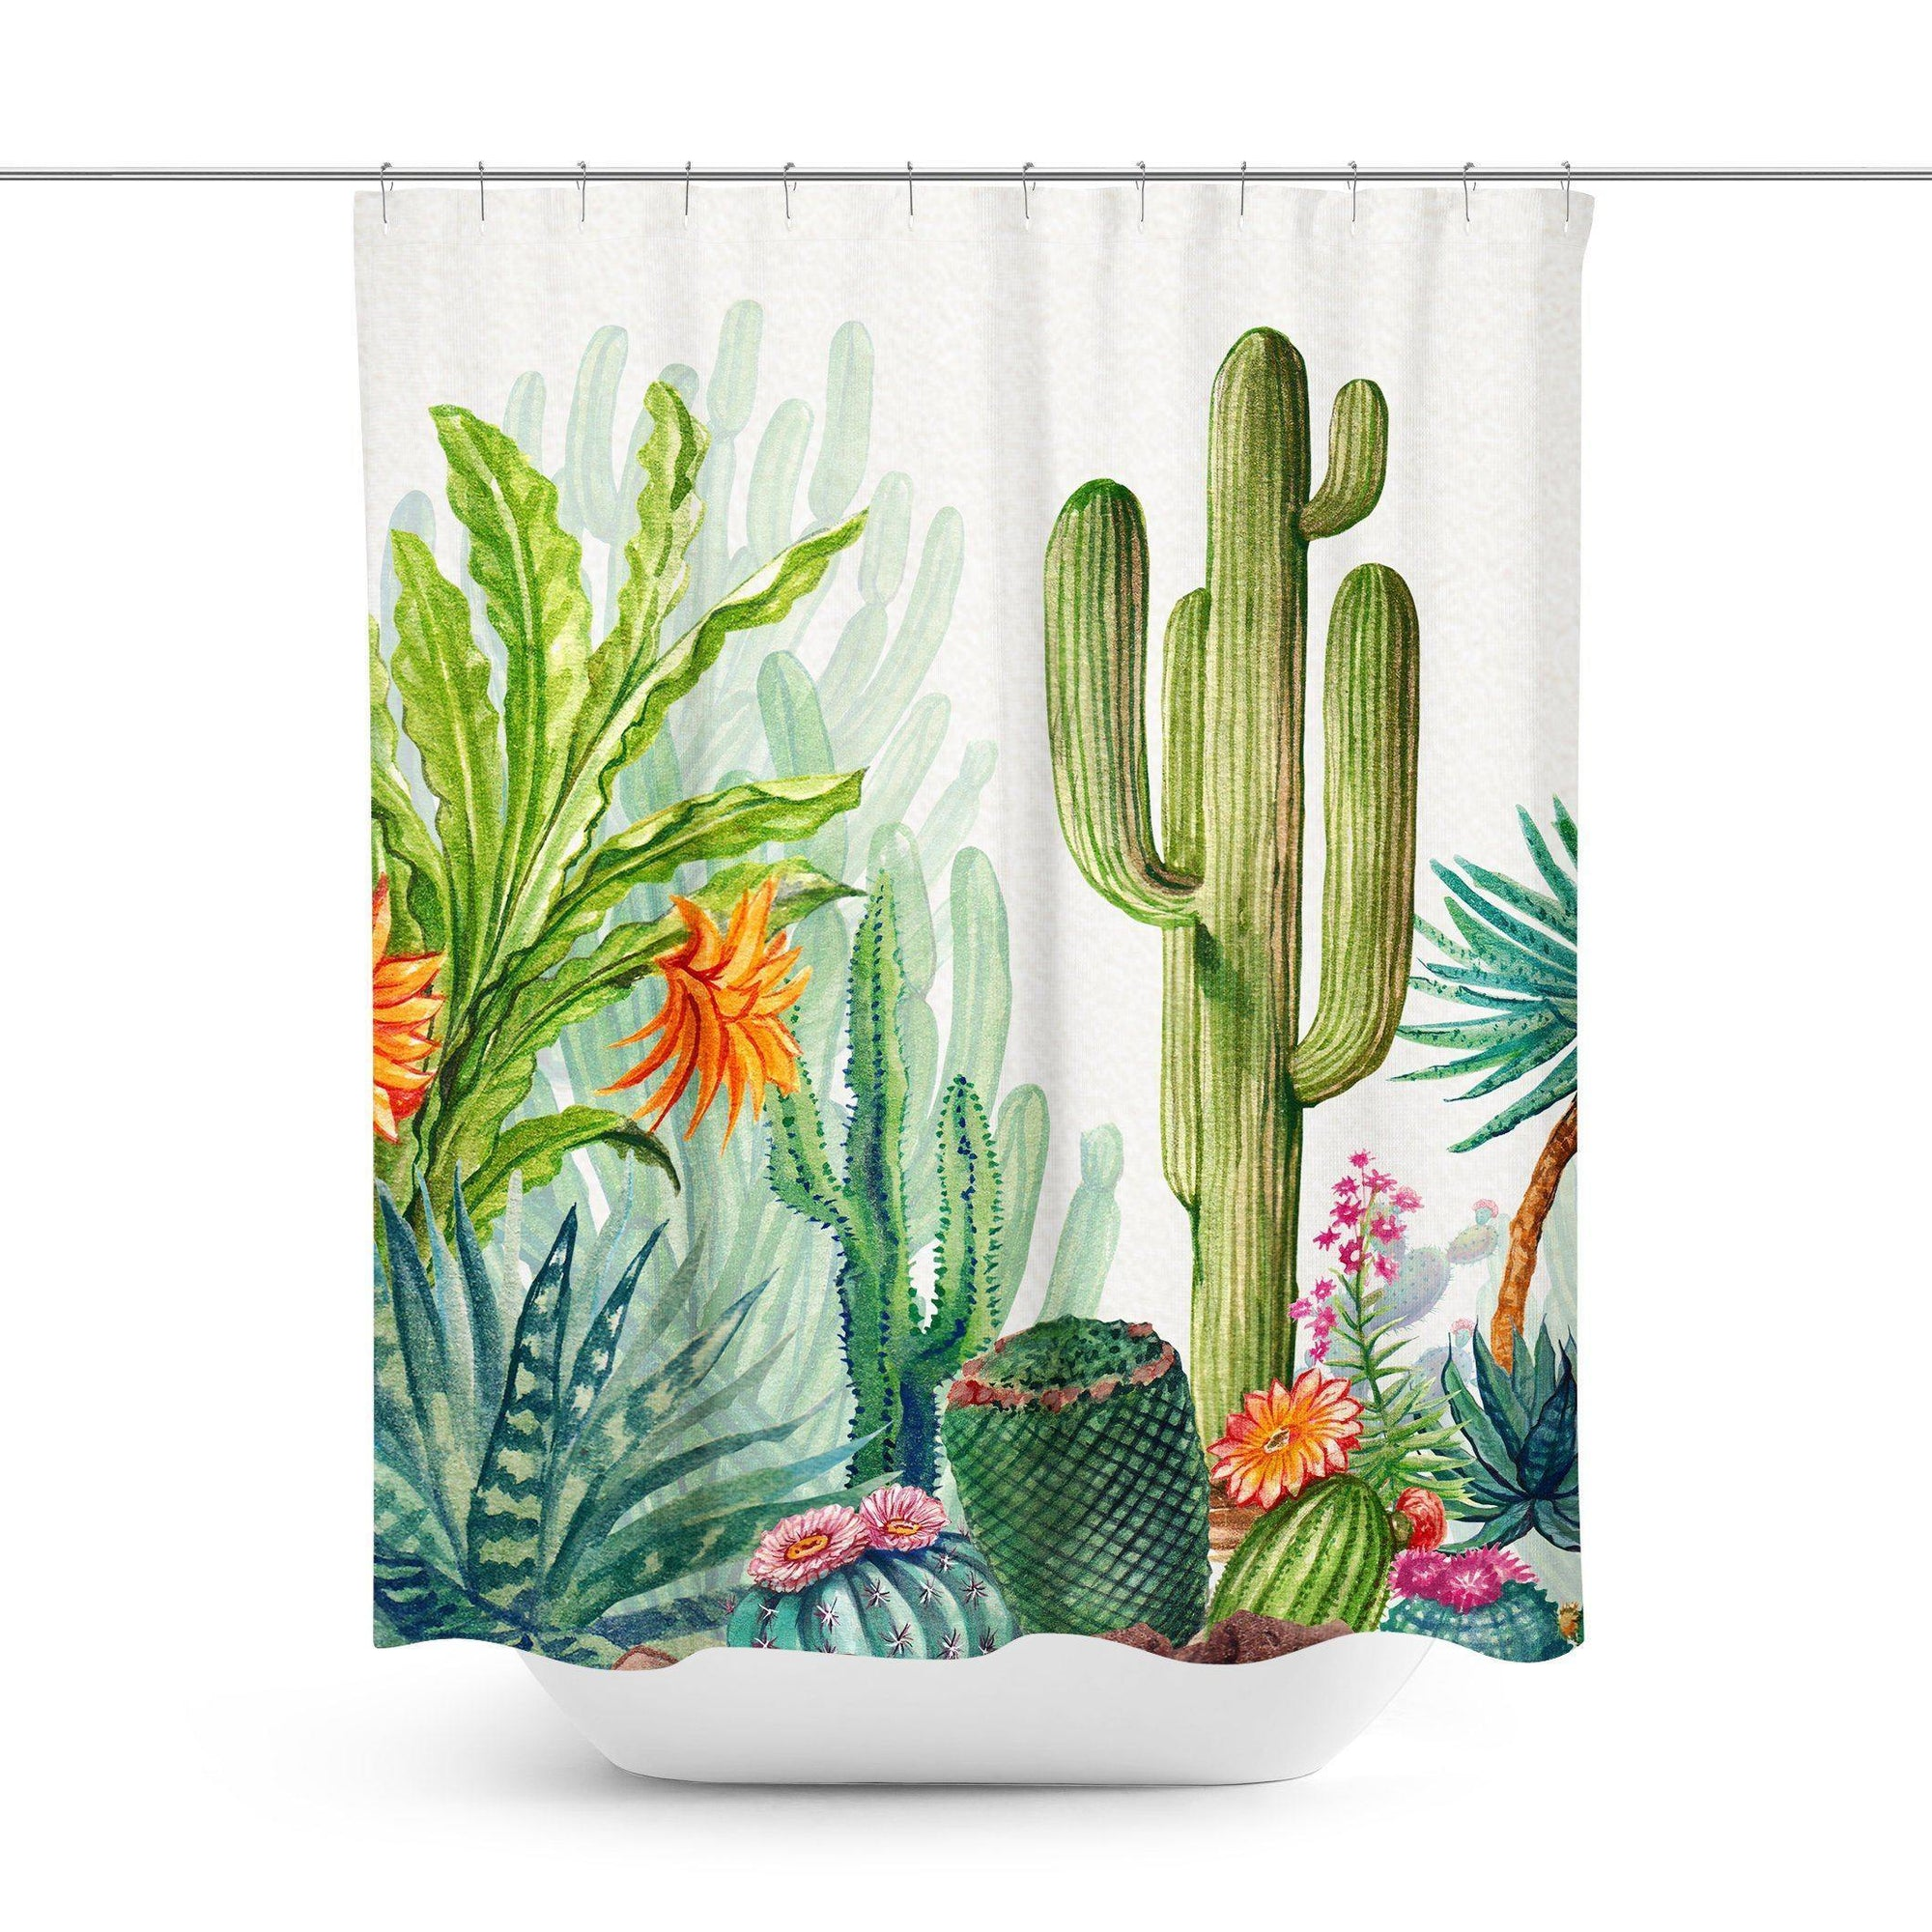 Cactus Garden Shower Curtain - Shower Curtains - W.FRANCIS